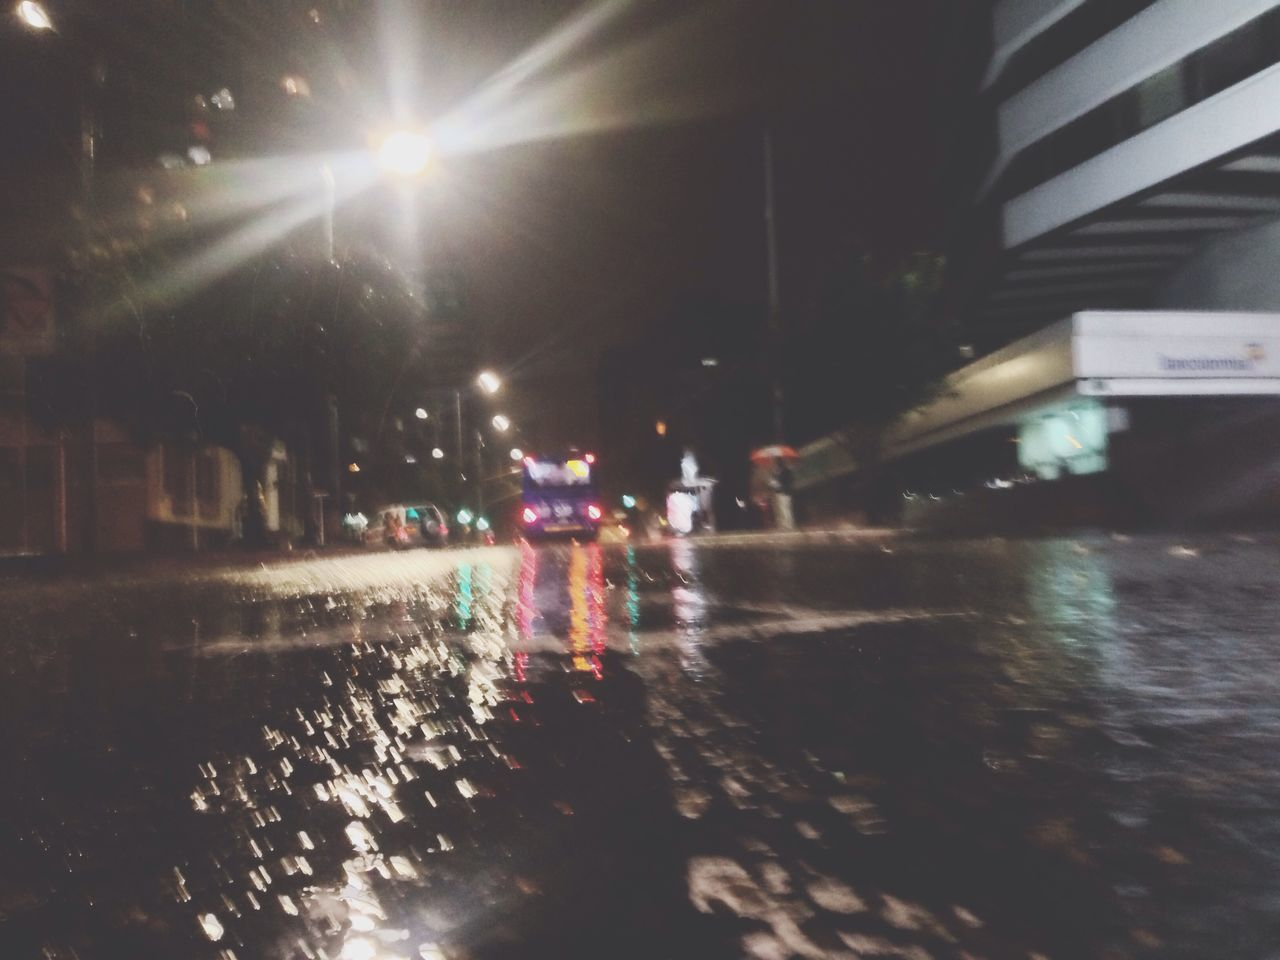 City Water Illuminated Reflection Night Rain Cold Big City Life City Life Sadness Melancolic Feeling Good Bye Street Building Bus Cars Light And Shadow Light Lights Wet Wet Street Streetphotography Street Photography